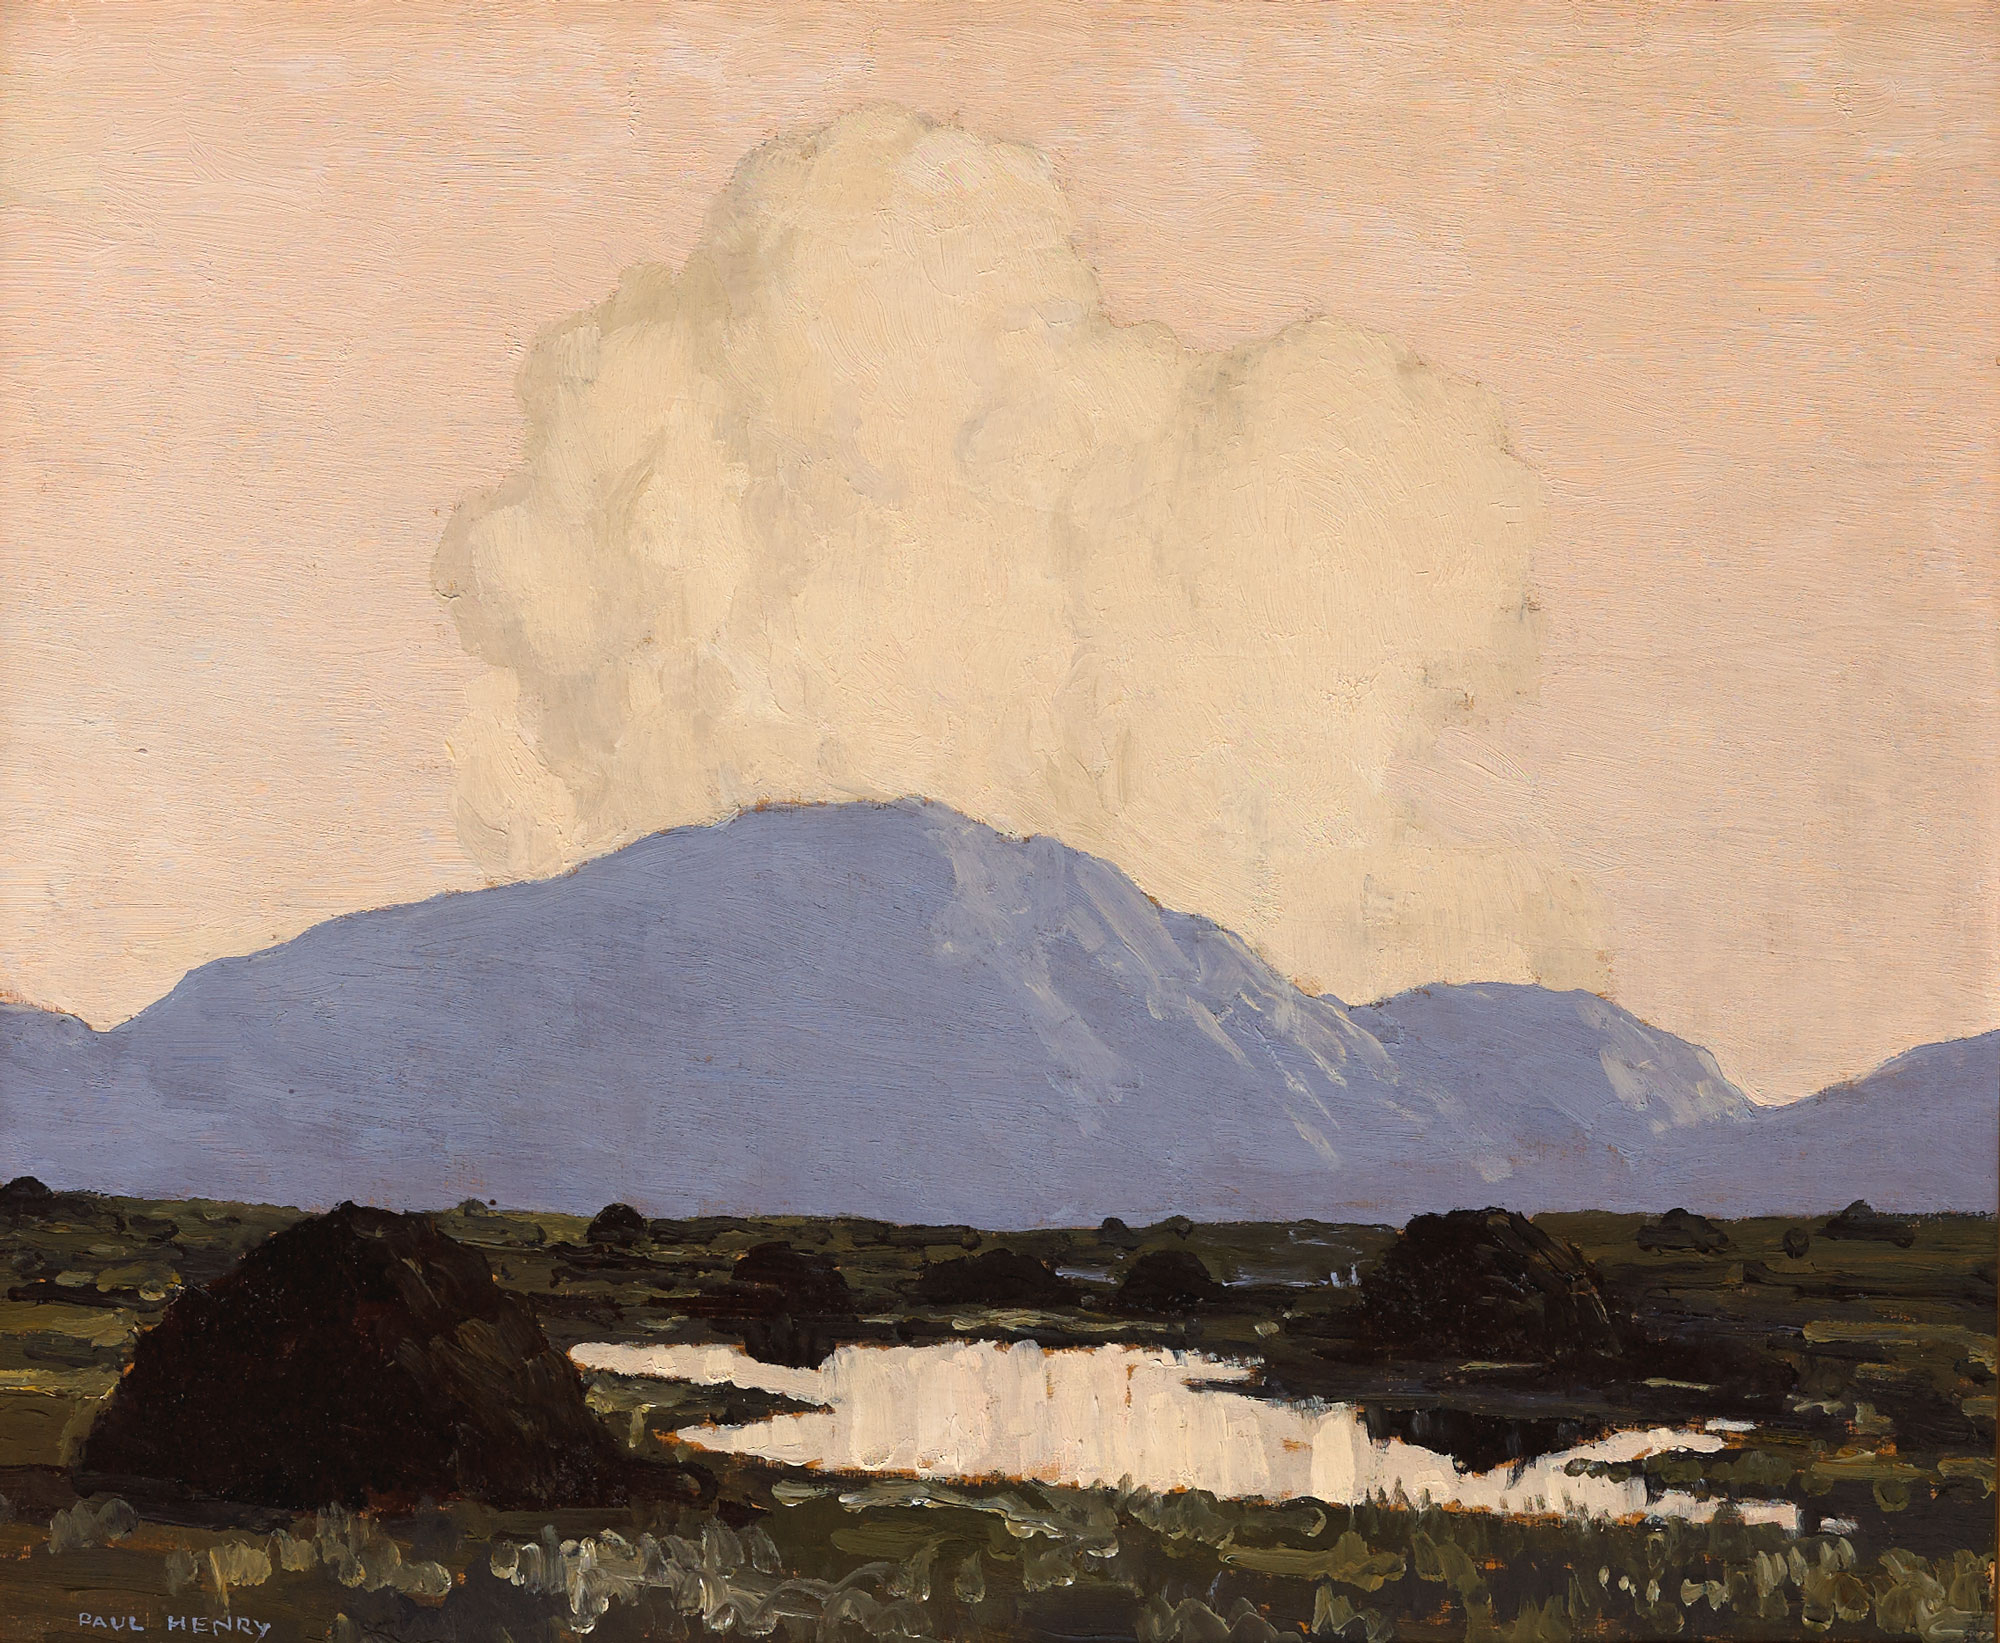 CONNEMARA, c.1929-1930 by Paul Henry sold for €66,000 at Whyte's Auctions